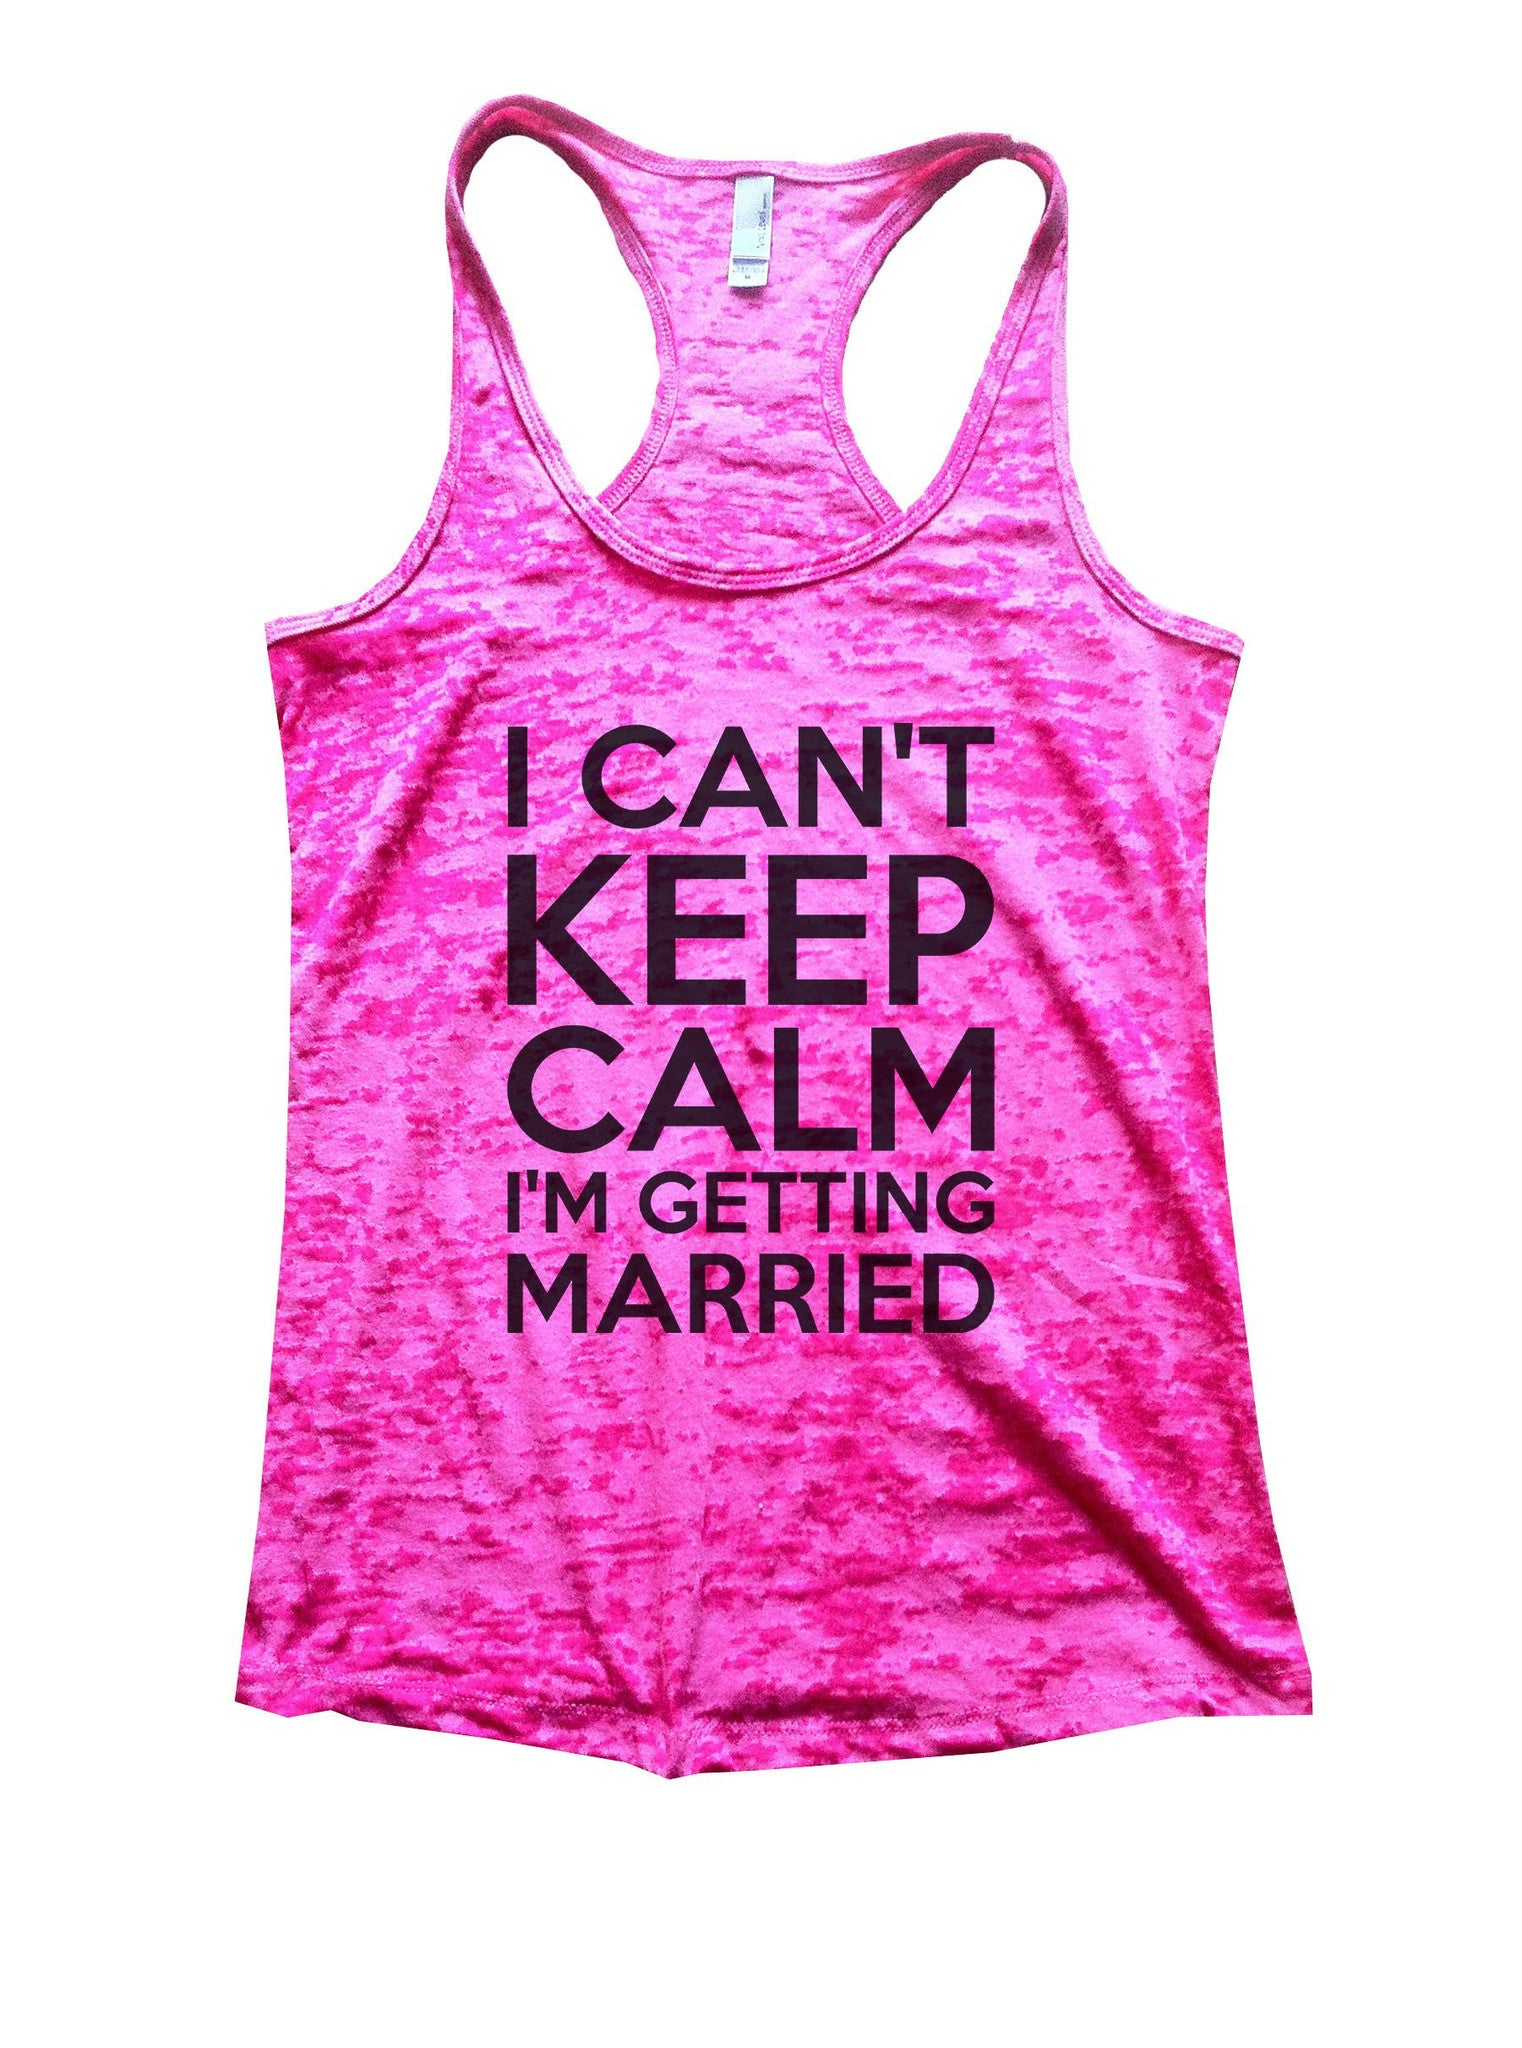 I Can't Keep Calm I'm Getting Married Burnout Tank Top By BurnoutTankTops.com - 887 - Funny Shirts Tank Tops Burnouts and Triblends  - 5